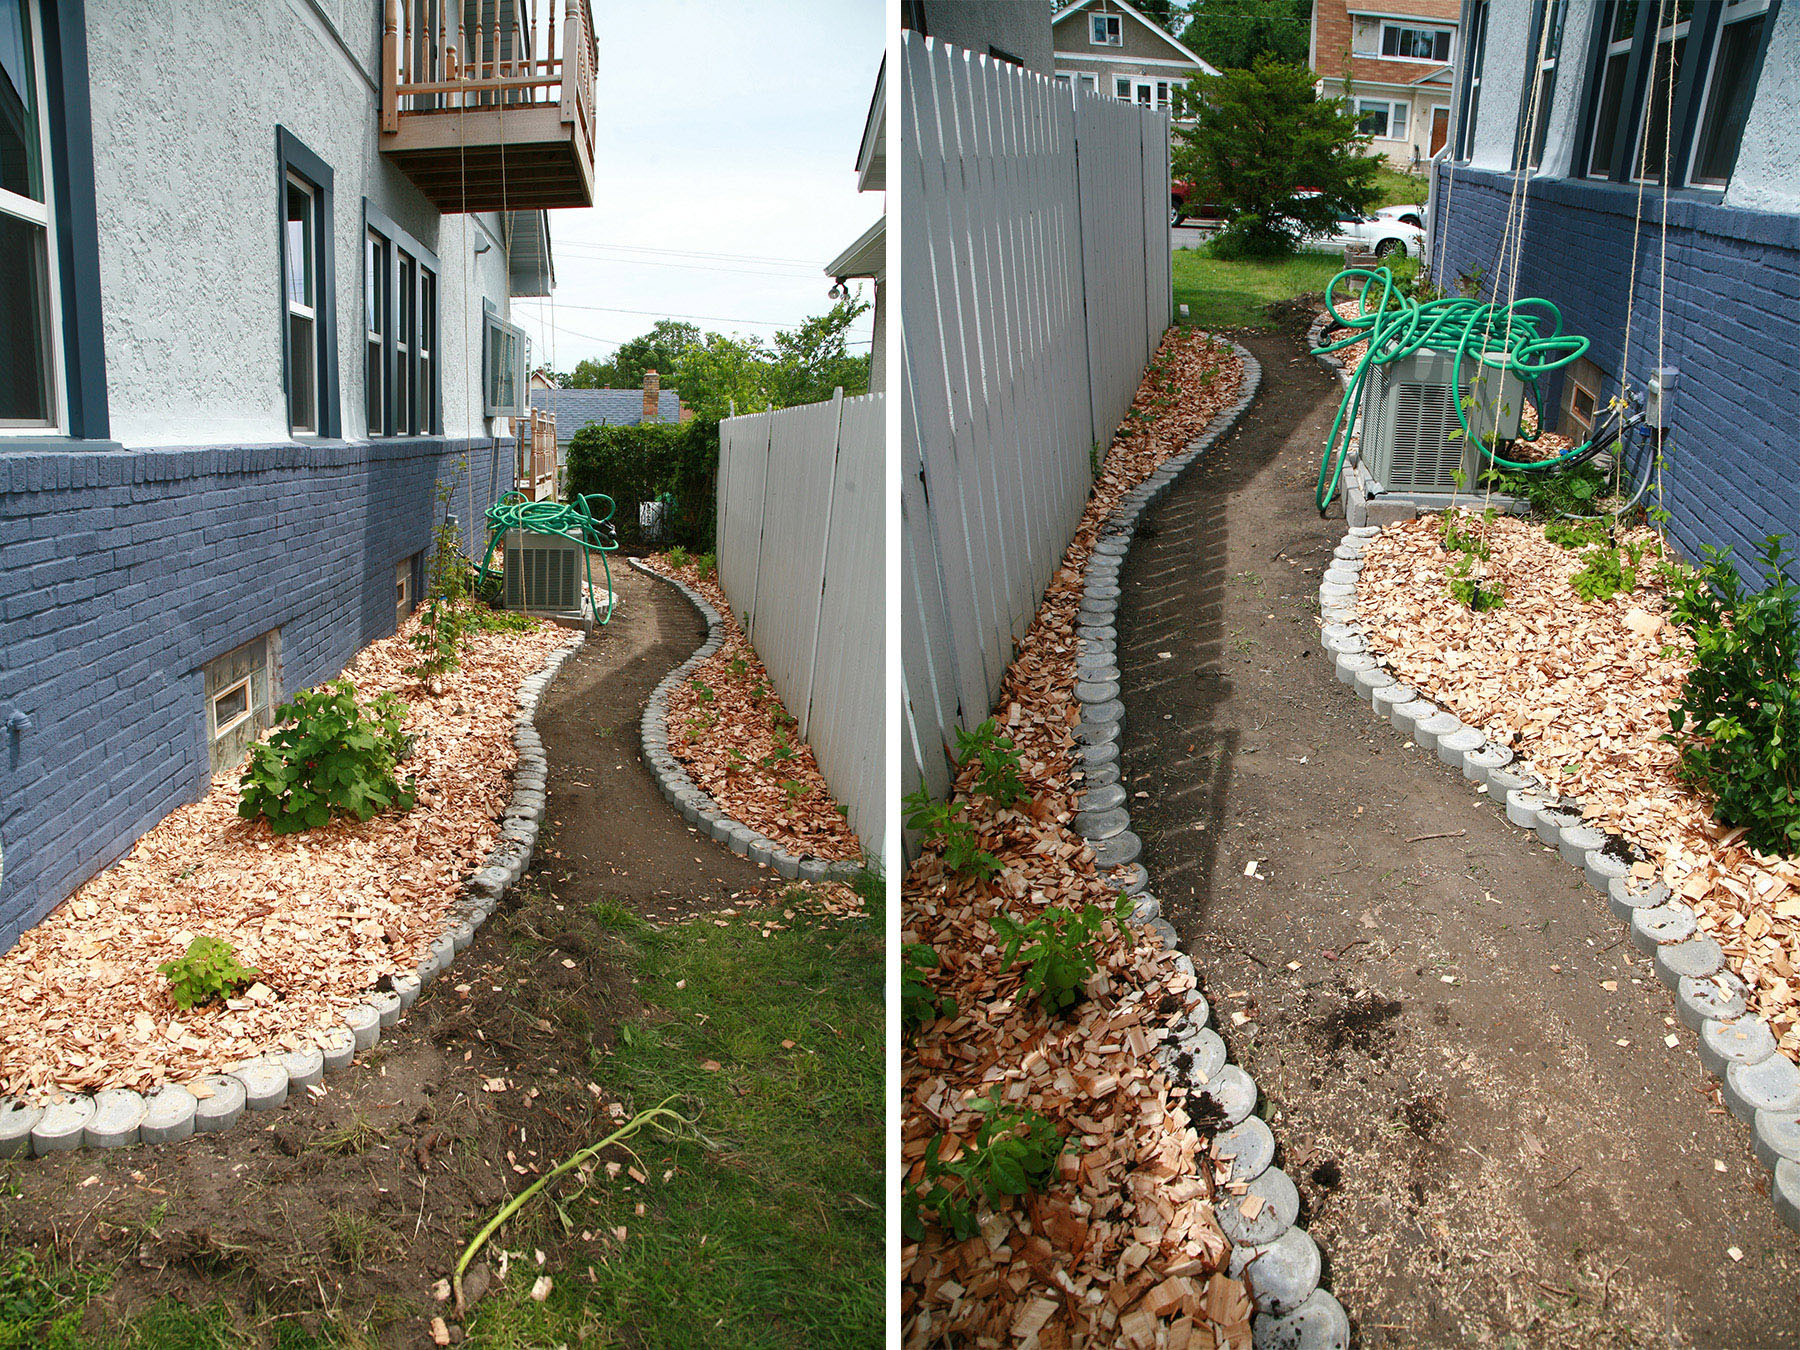 A stone-edged pathway has been nuilt into the side yard.